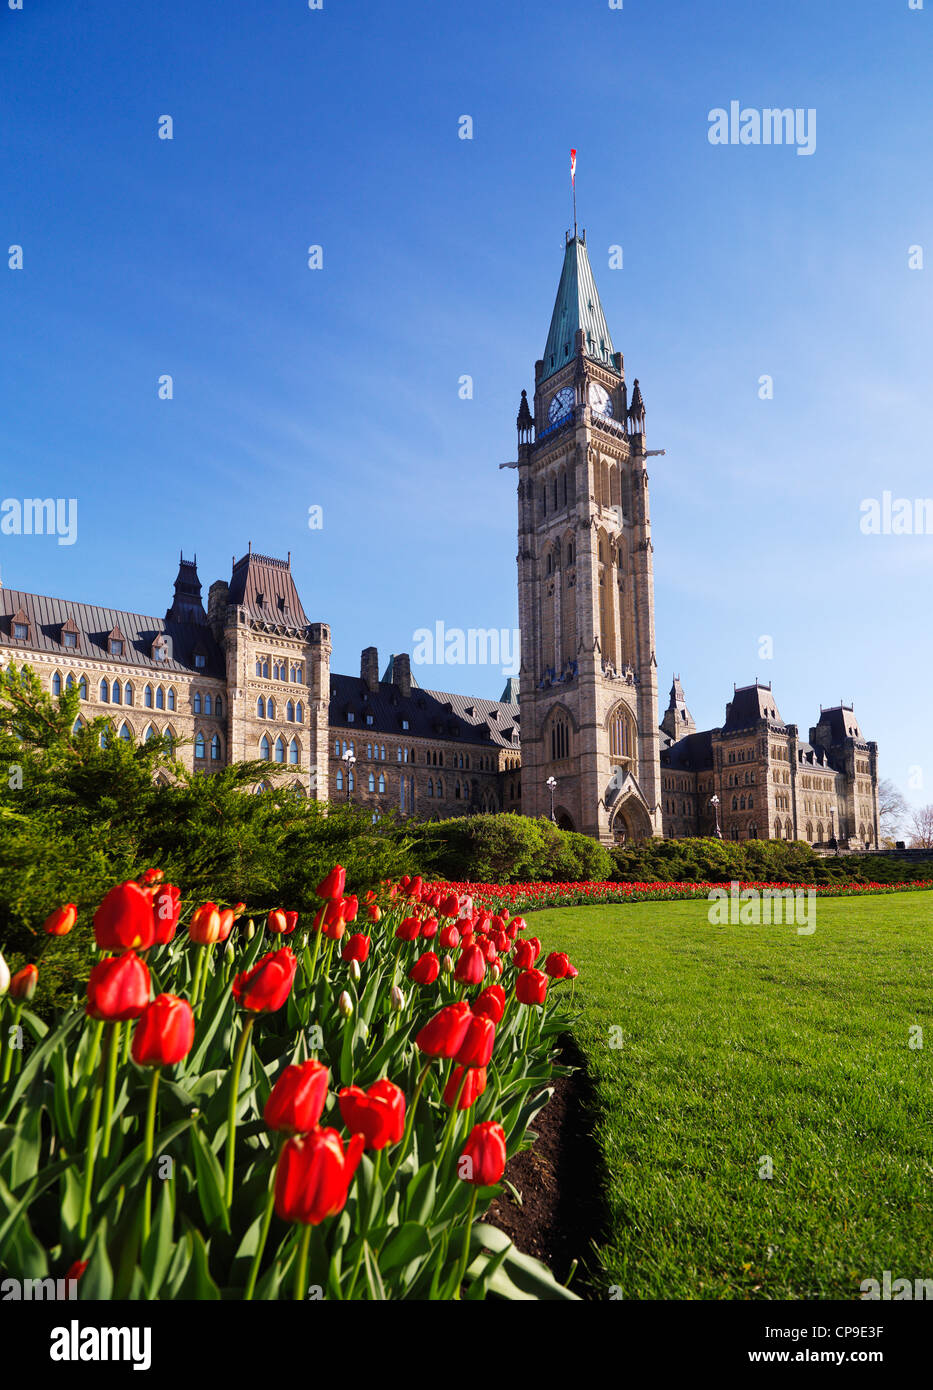 Tulip festival. The Parliament Building. Ottawa, Ontario, Canada springtime scenic May 2012 - Stock Image